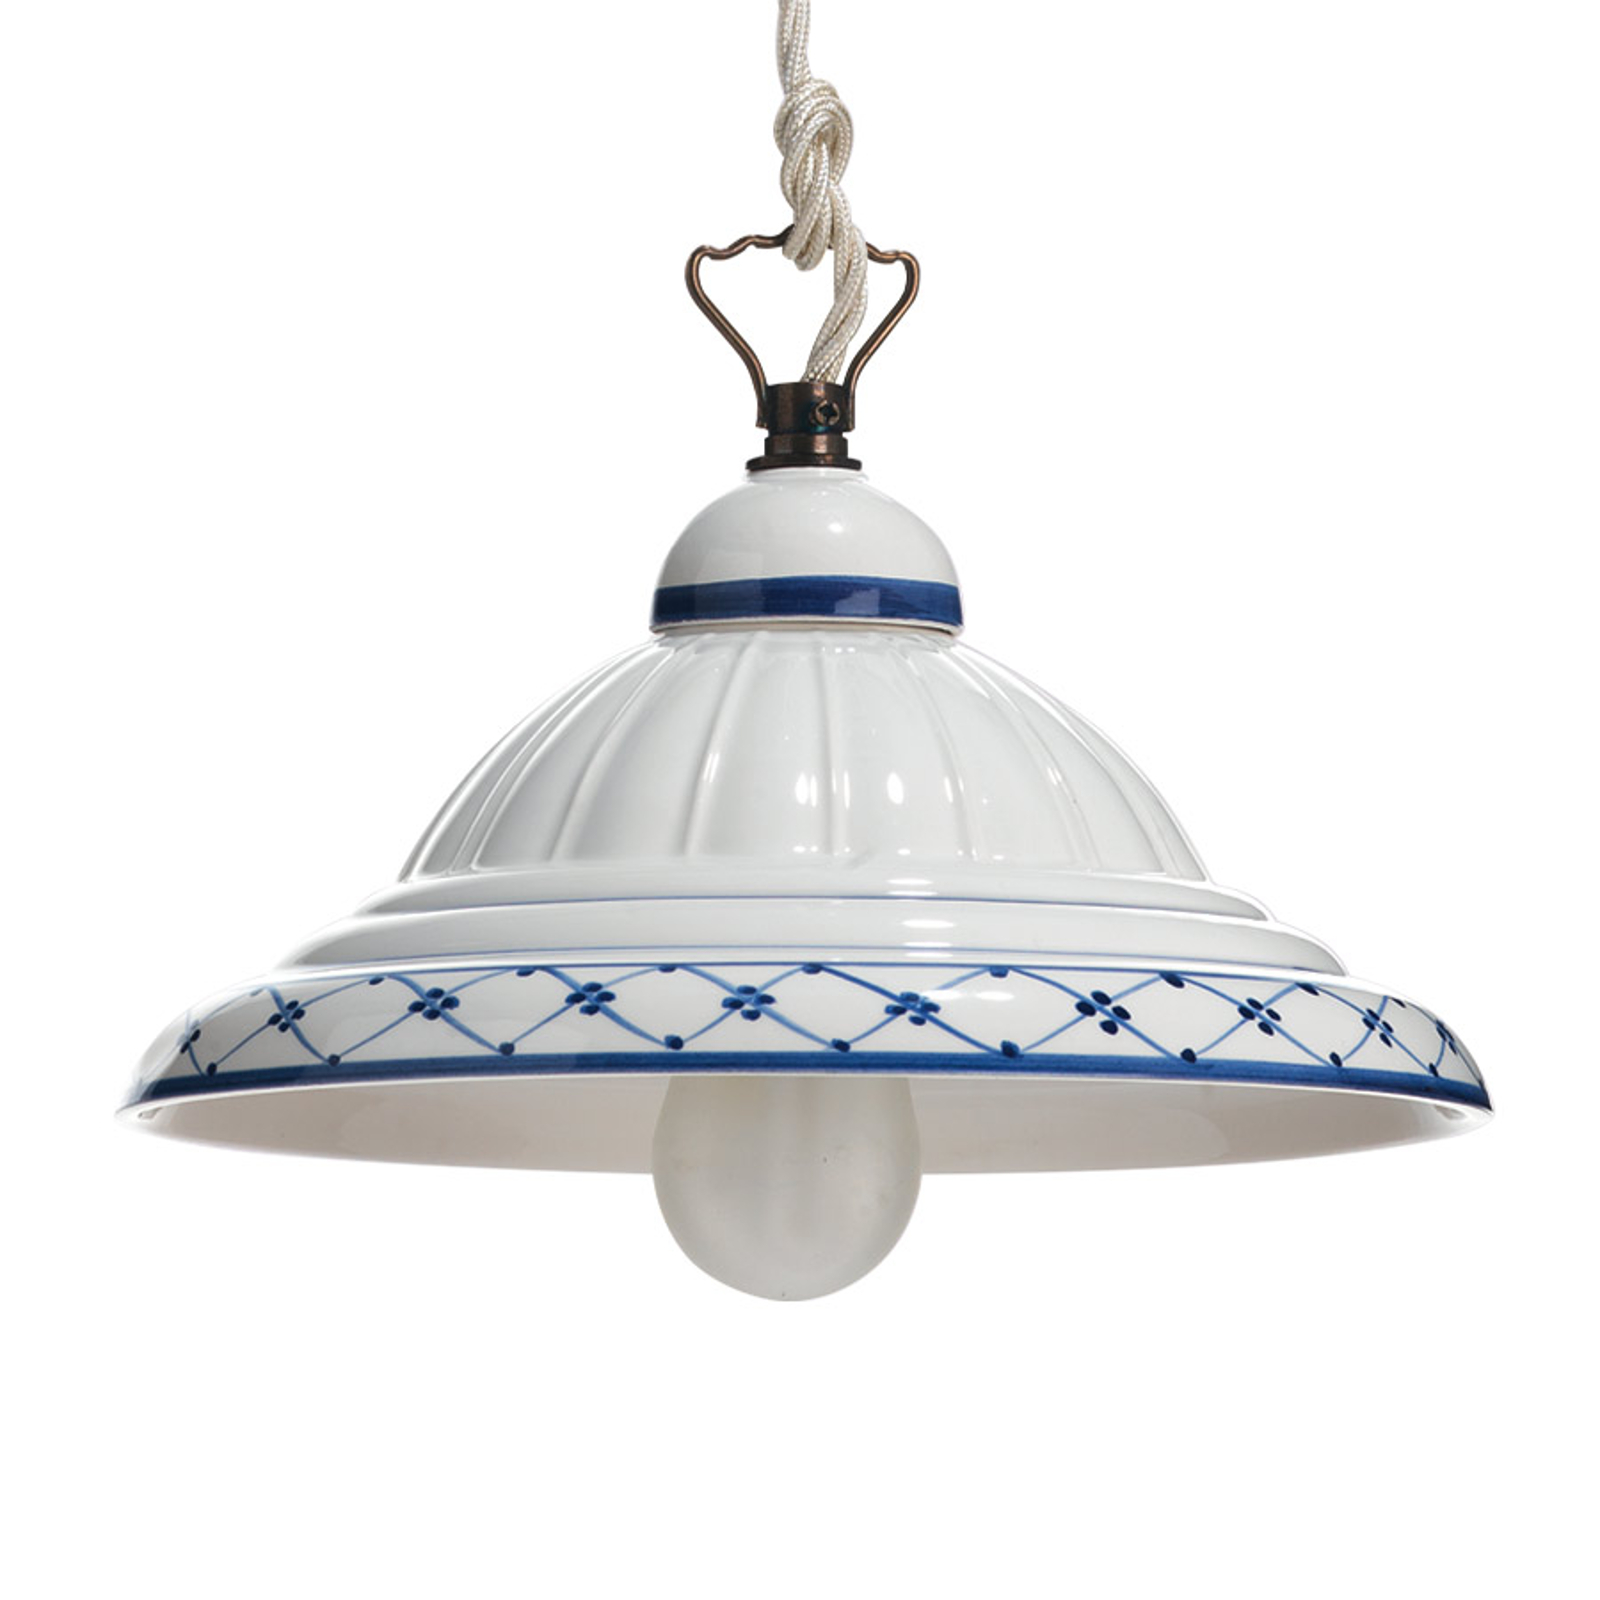 Ceramic hanging light Firenze in country style_3046041_1